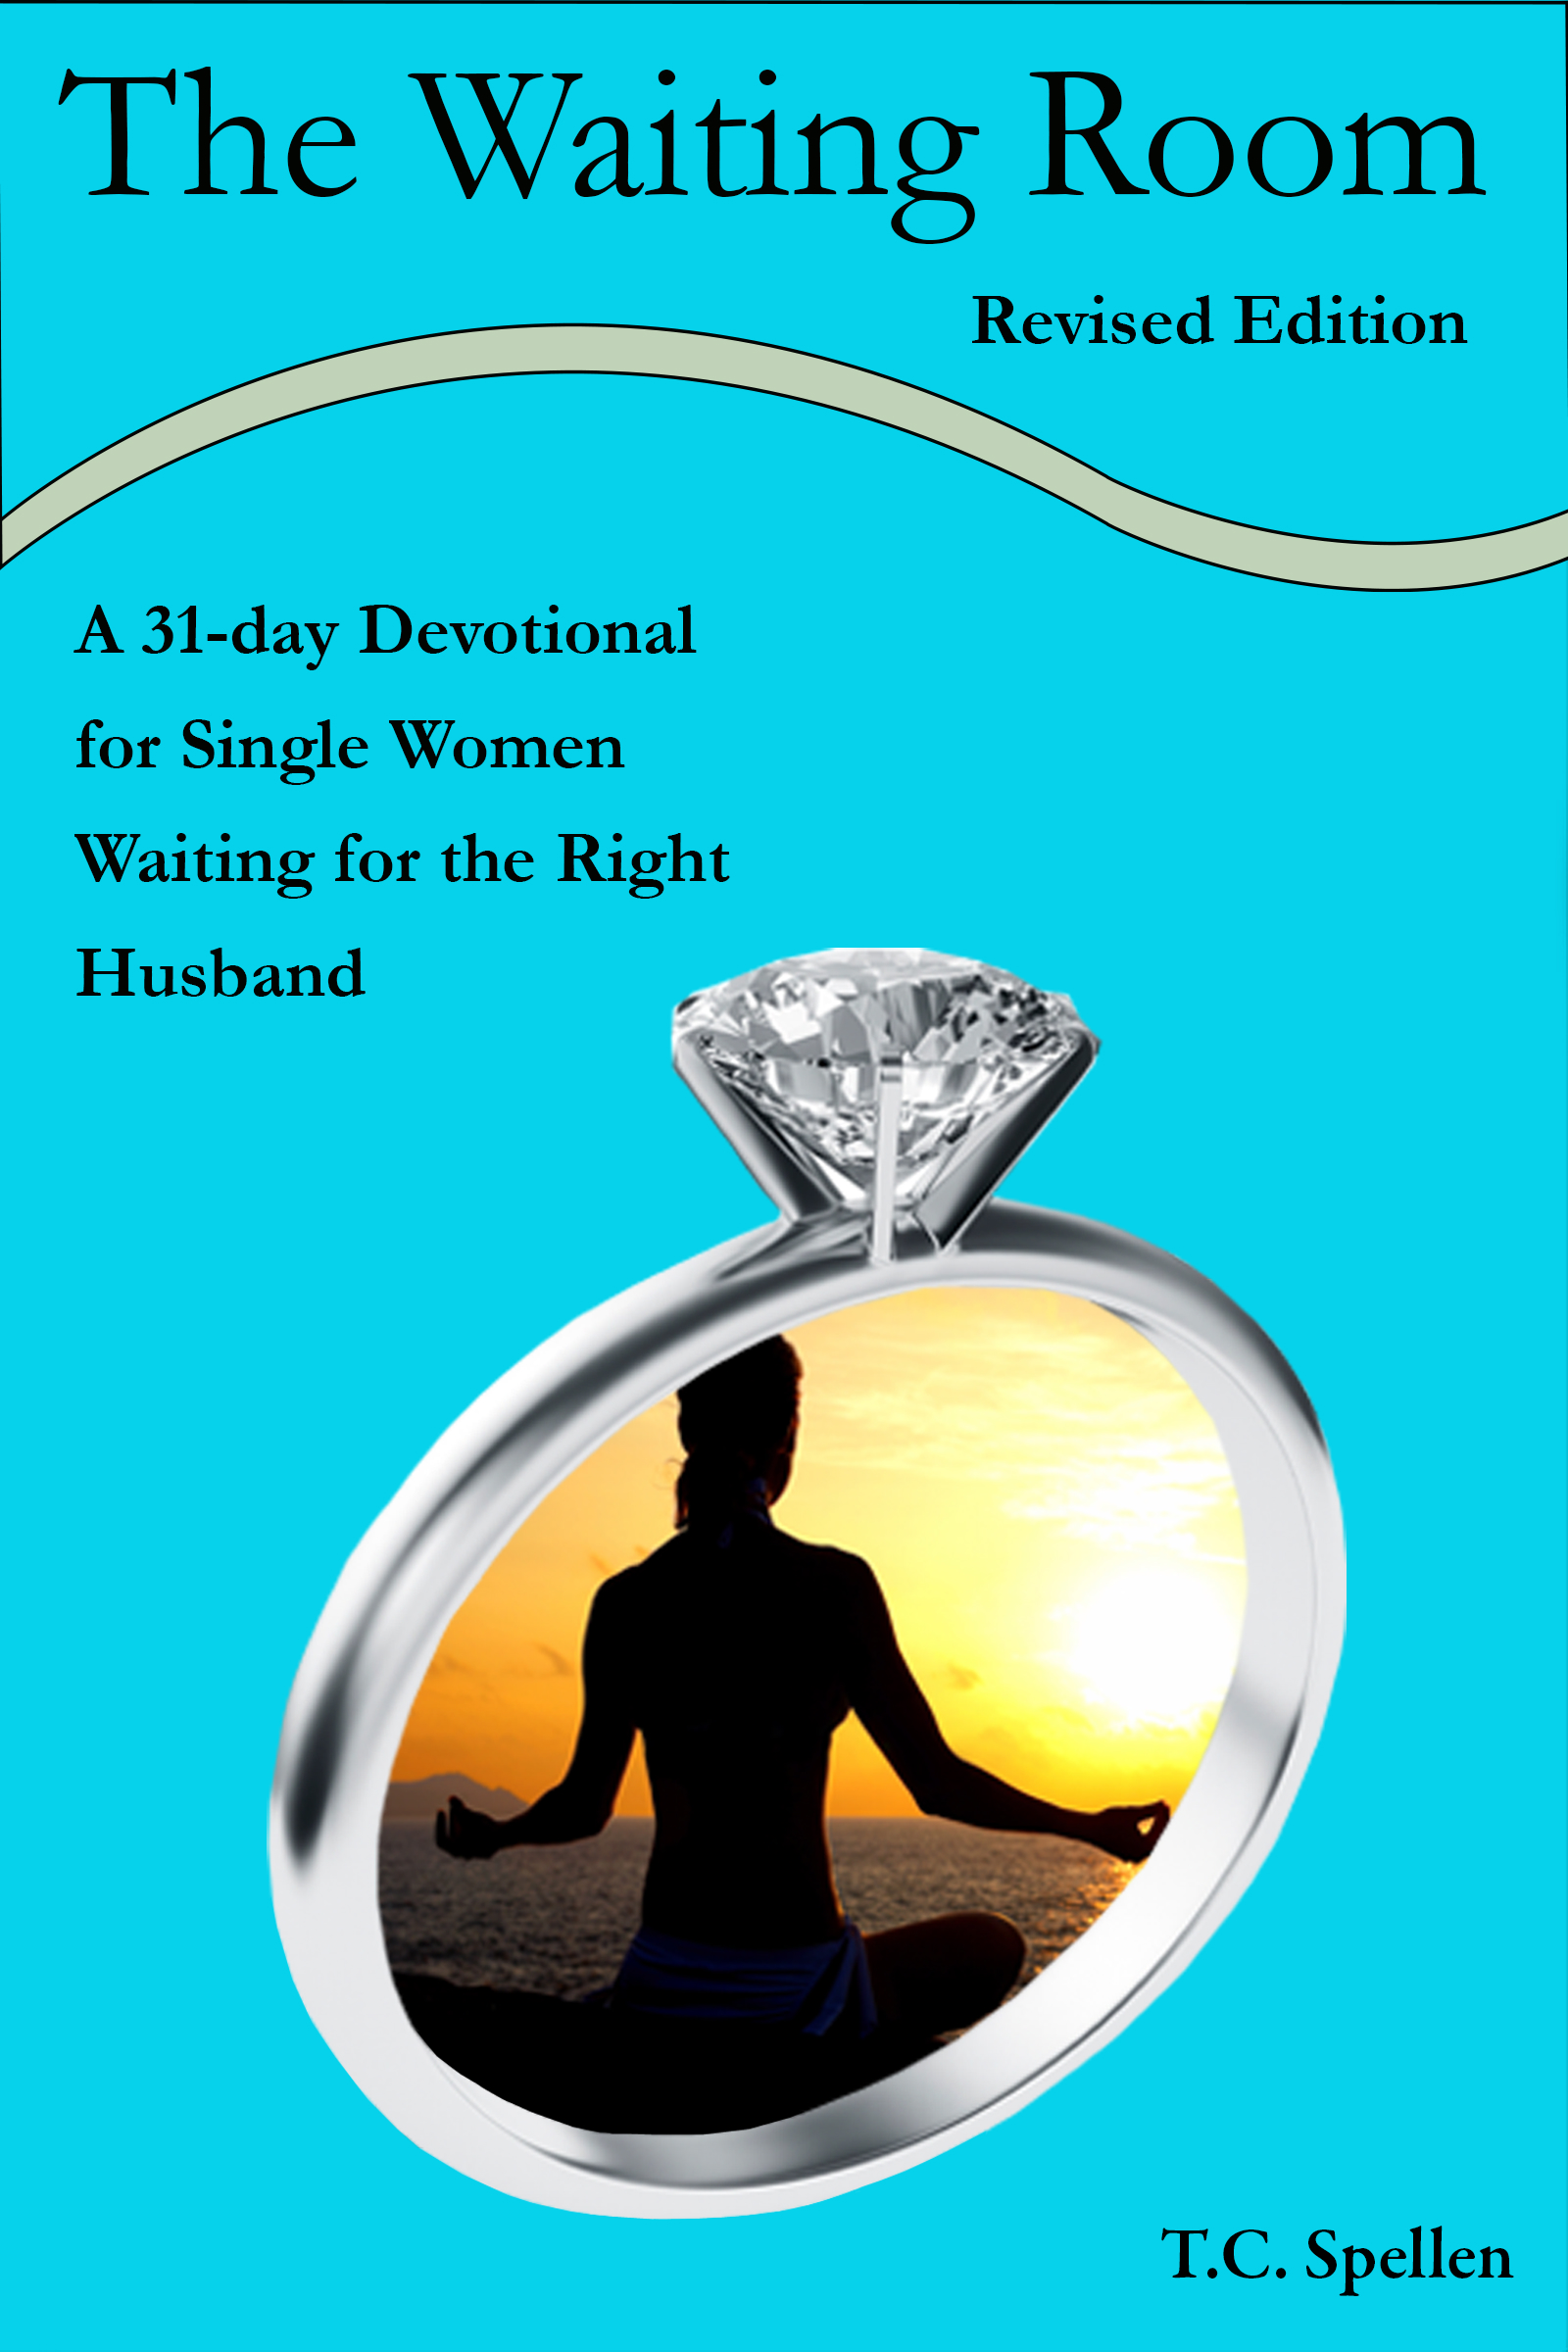 The Waiting Room, a 31-day Devotional for Single Women Waiting for the  Right Husband, Revised Edition, an Ebook by TC Spellen